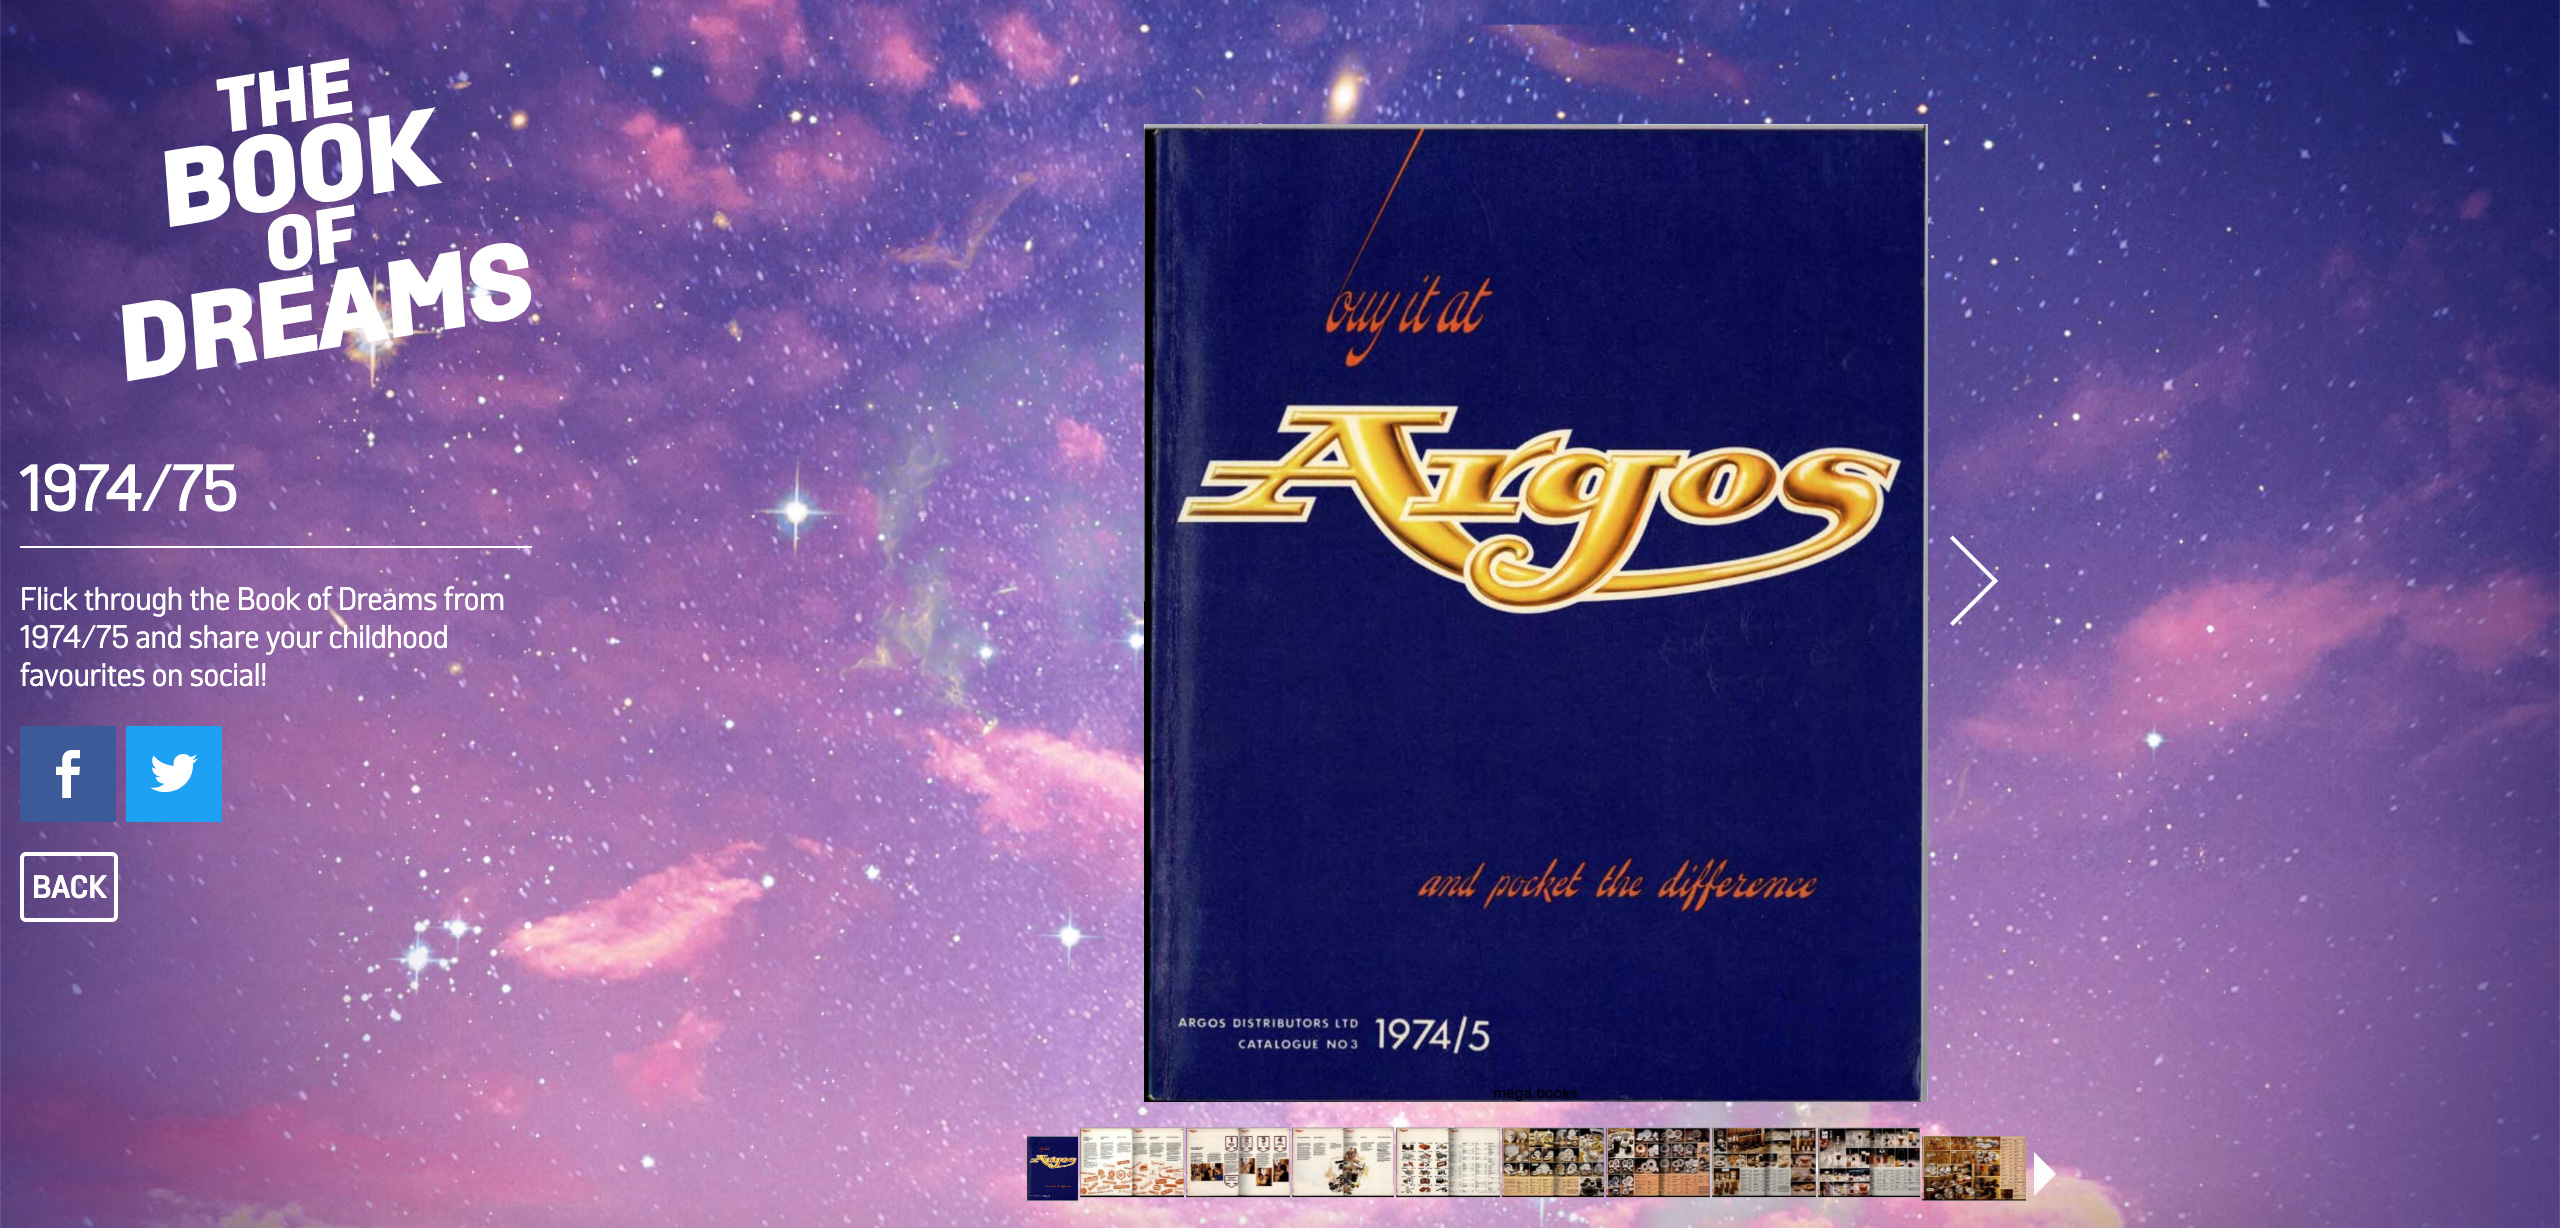 Argos' 70s book of dreams as a part of christmas campaign